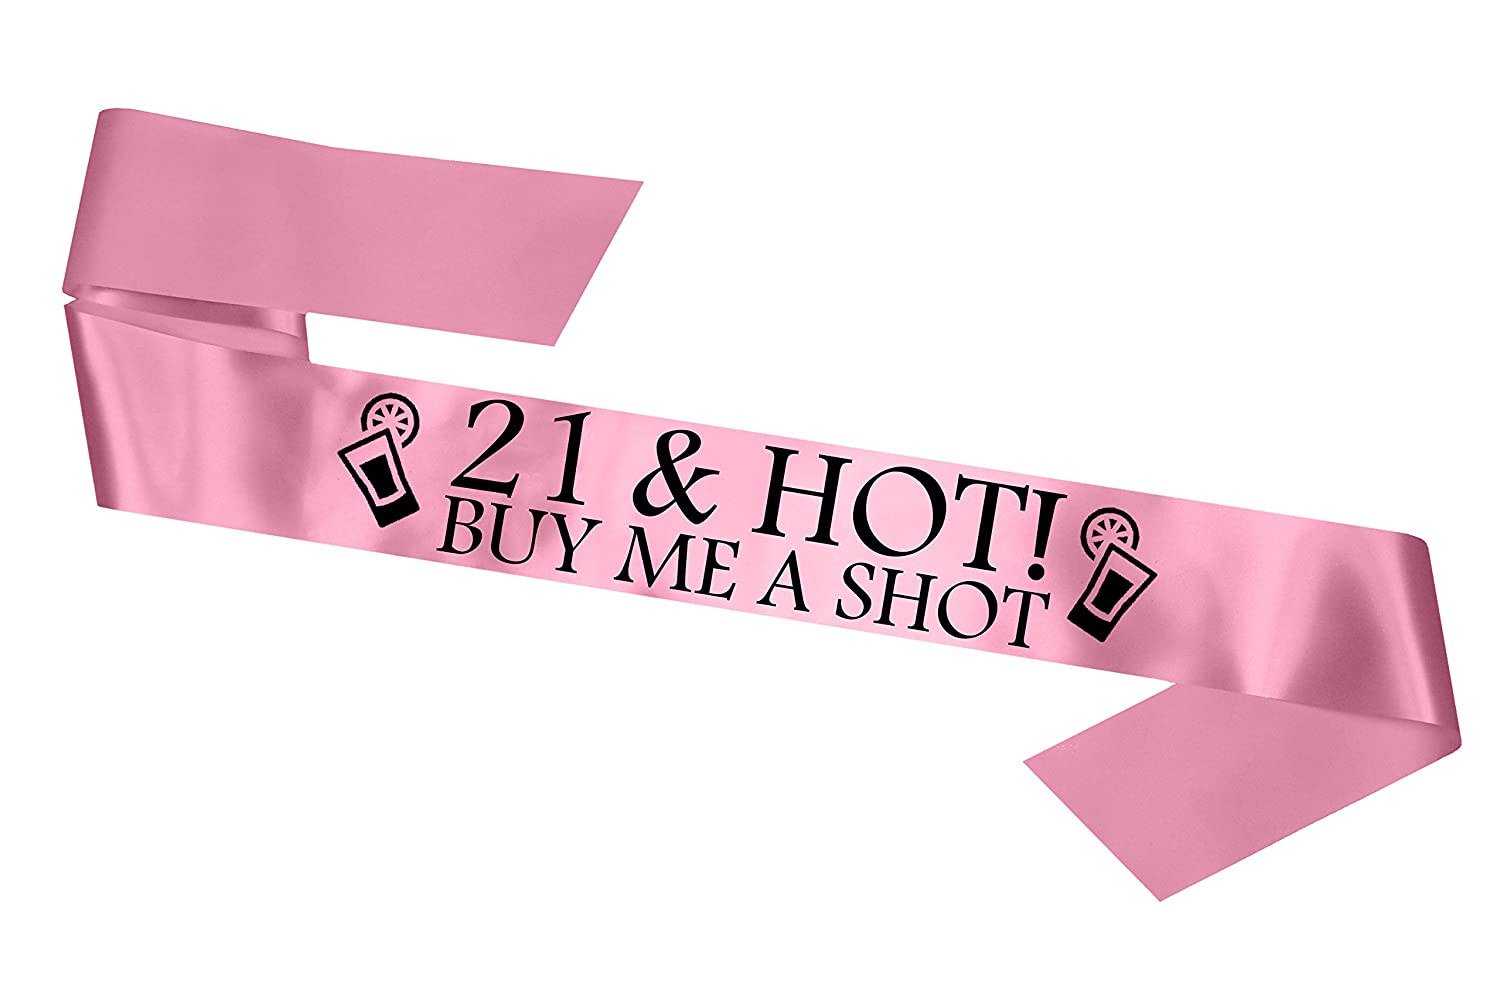 '21 & Hot - Buy me a Shot!' Party Sash 21st Birthday Night Going Out Sashes Accessory Gift Badge Novelty - Baby Pink Fancy Pants Store Ltd